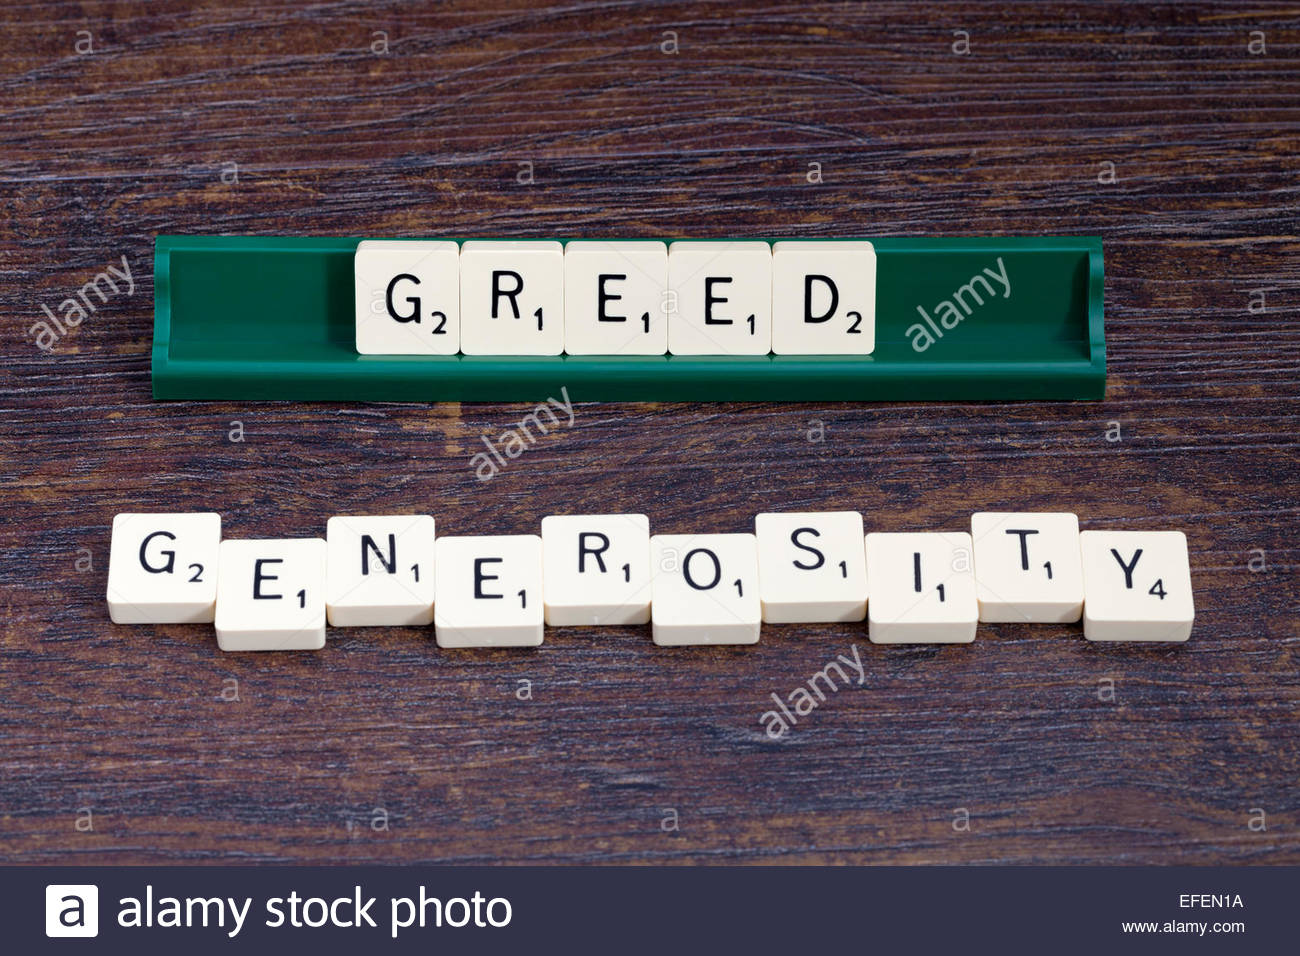 Greed and Generosity spelled out with scrabble letters - Stock Image